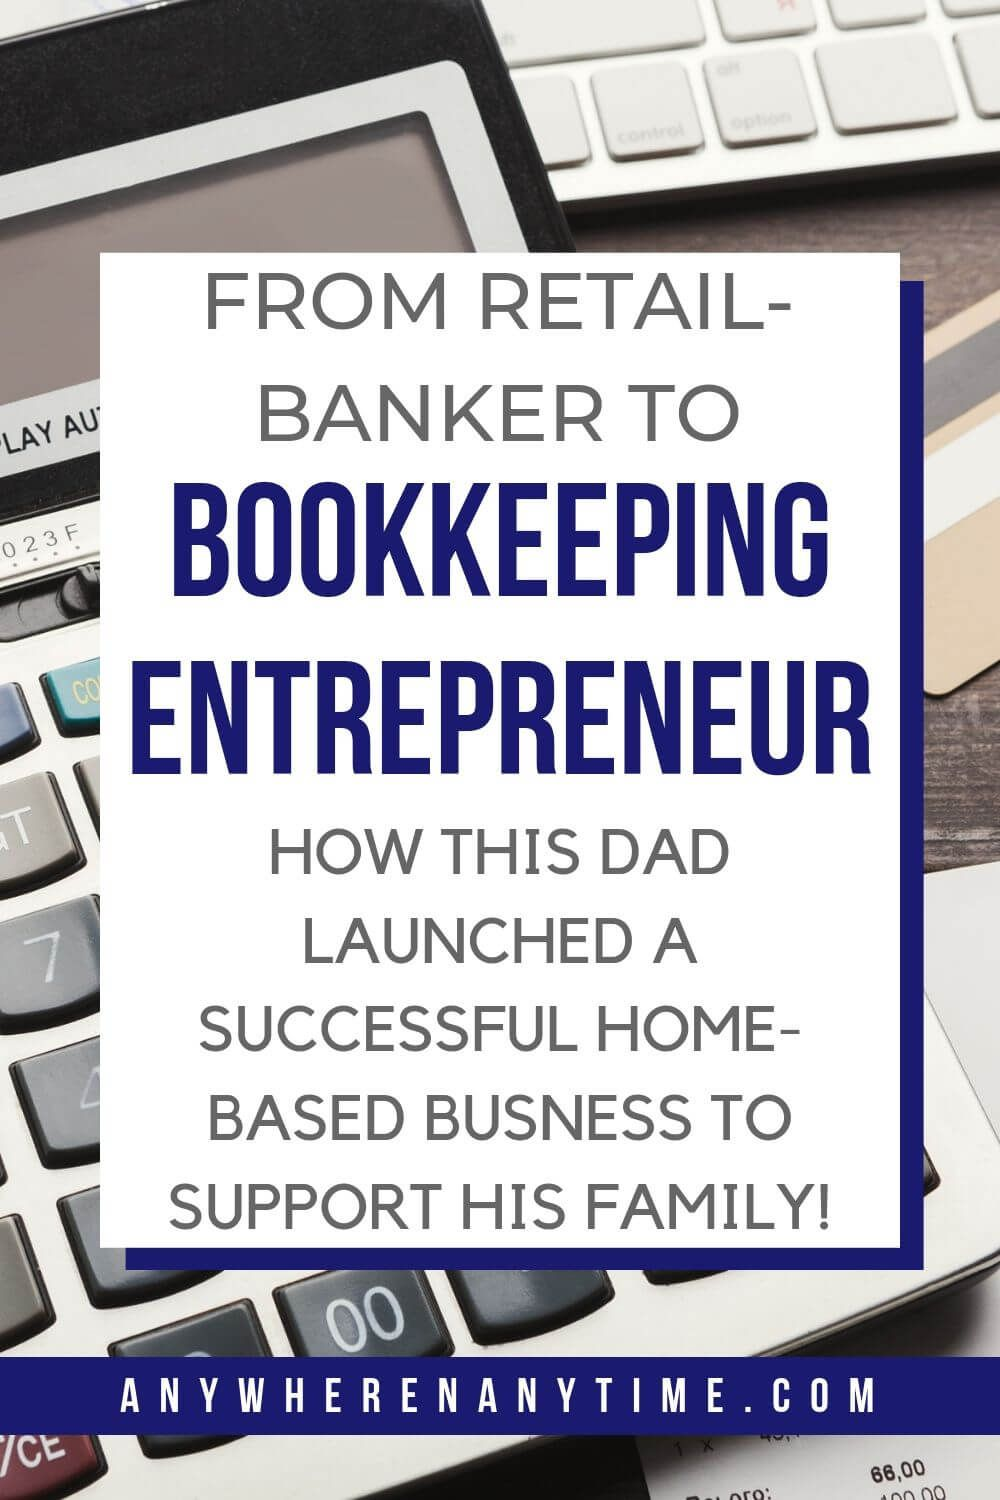 Careers For Stay At Home Dads From Retail Banker To Home